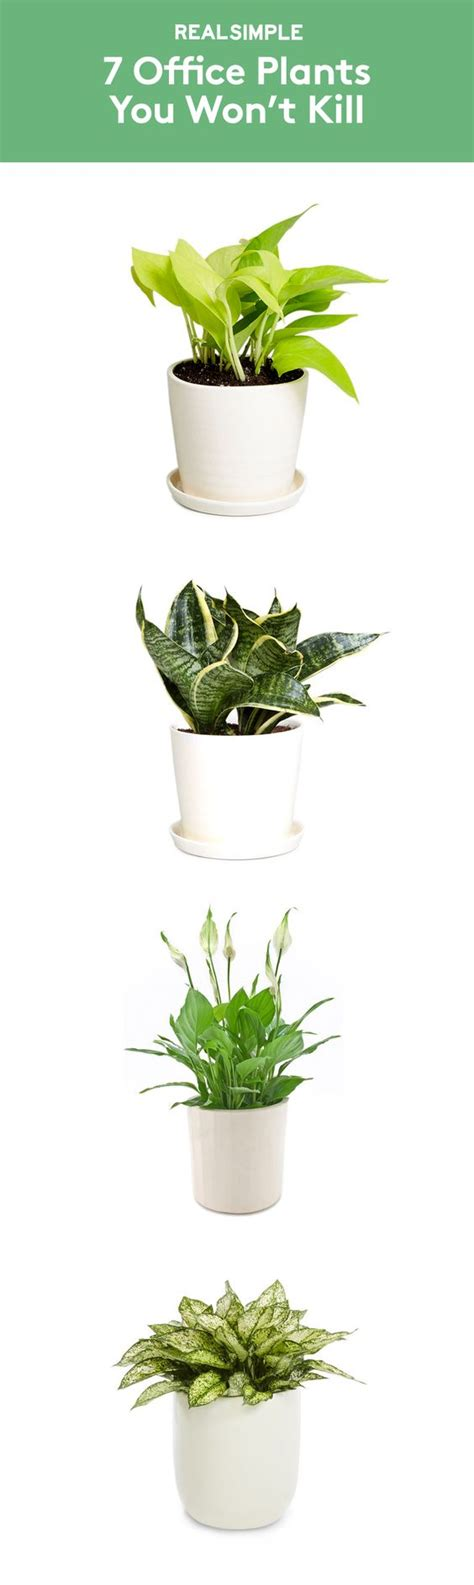 best plants for an office 7 office plants you won t kill kantoren planten en